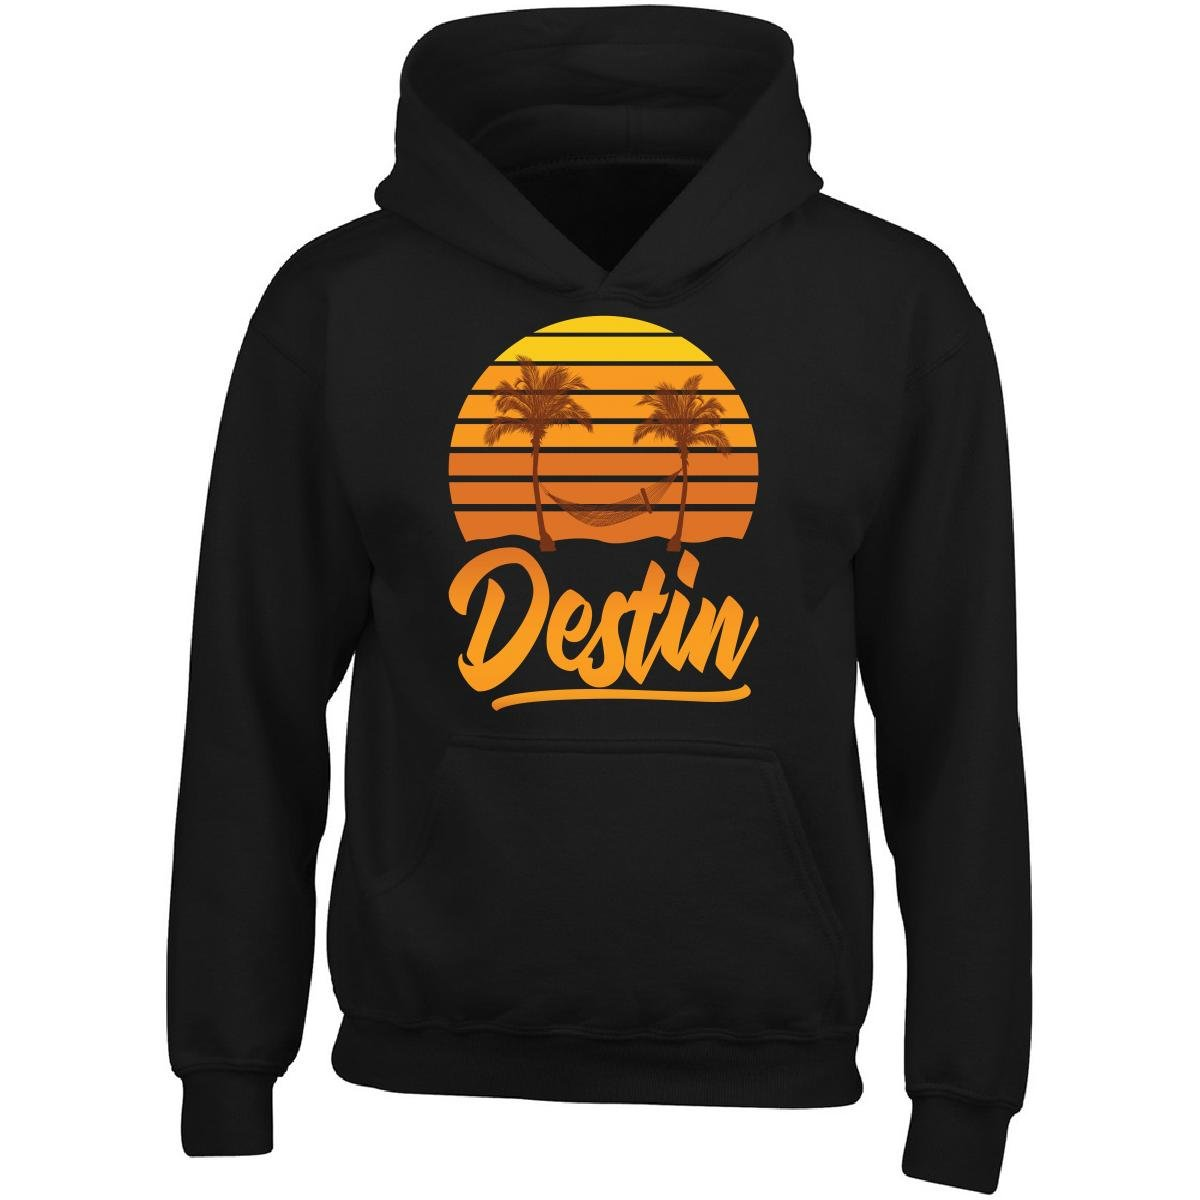 Amazon.com: KewlCover Destin Florida Beach Palm Trees - Adult Hoodie:  Clothing